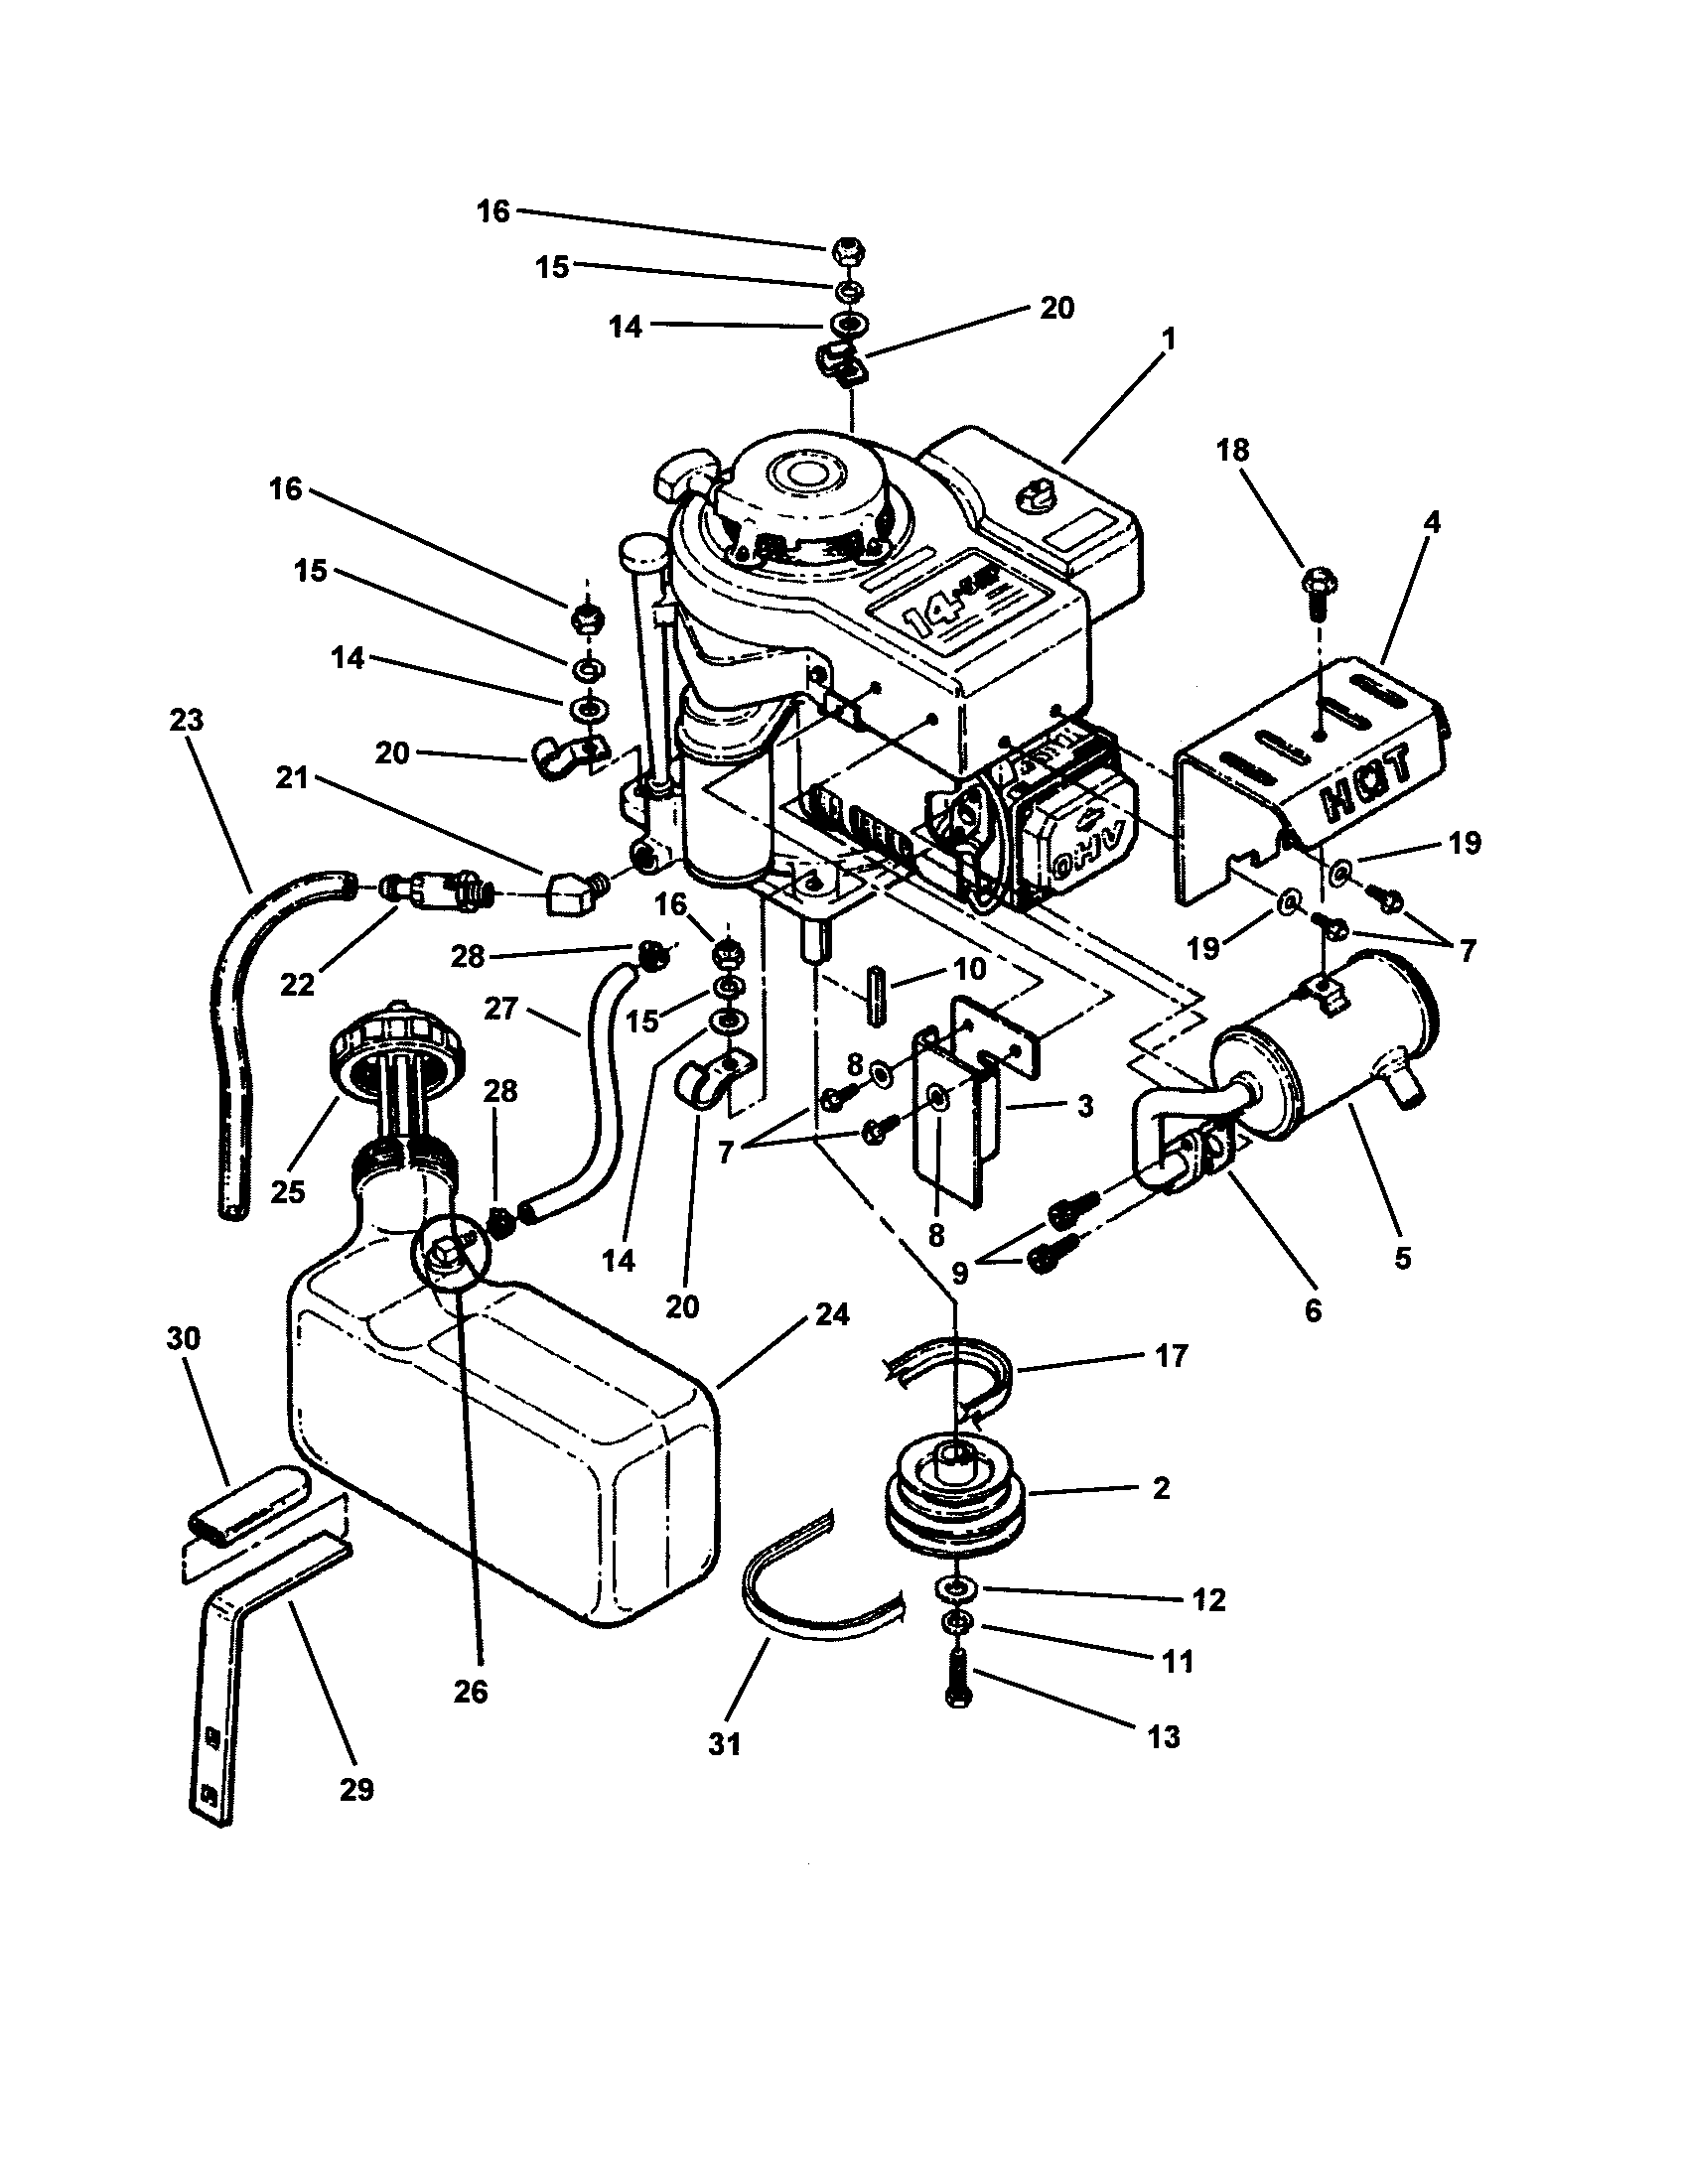 Wiring Diagram: 33 Snapper Riding Mower Parts Diagram